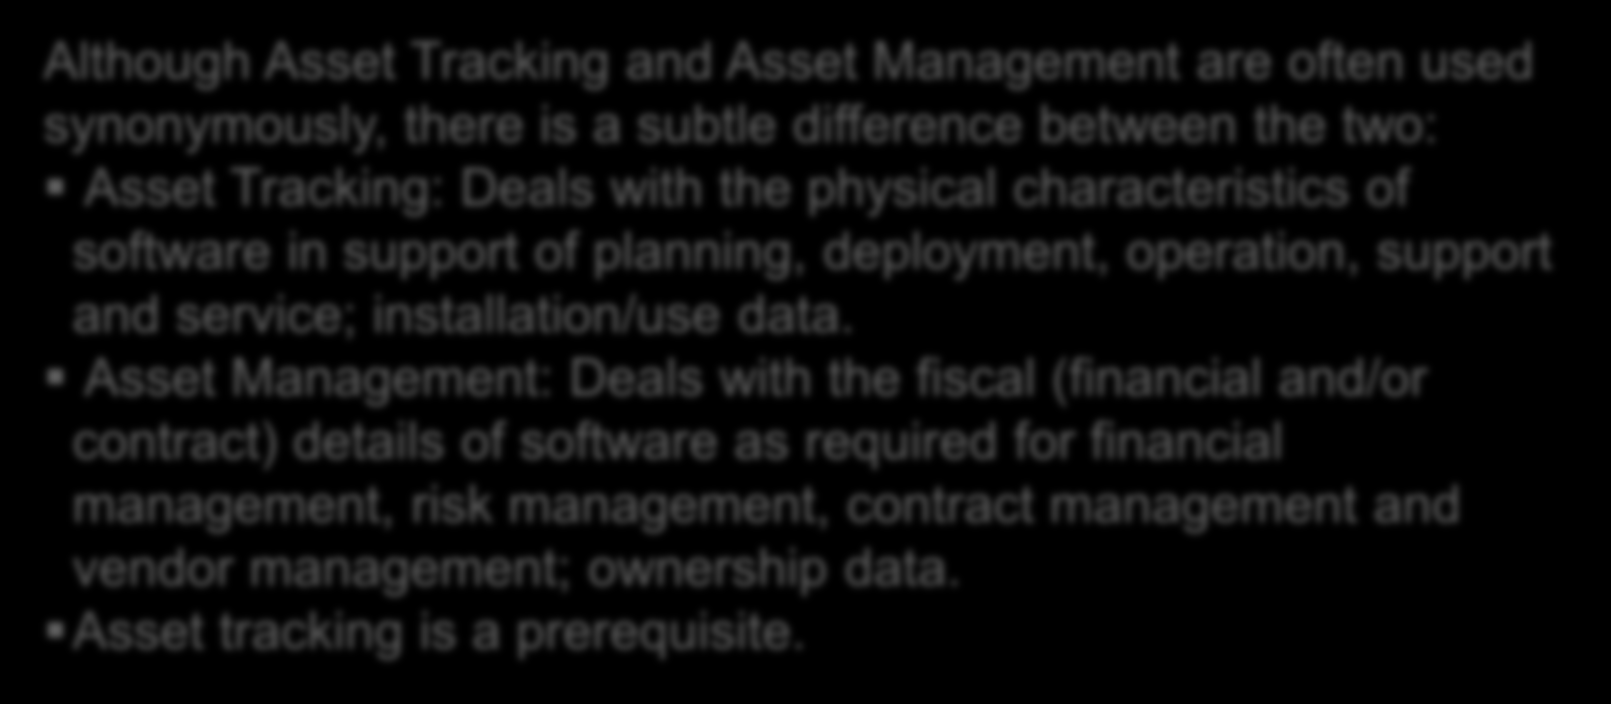 "Software Asset Management (""SAM"") How does it help? SAM helps organizations understand what software they have licensed, deployed, in use, and the deltas between those figures."